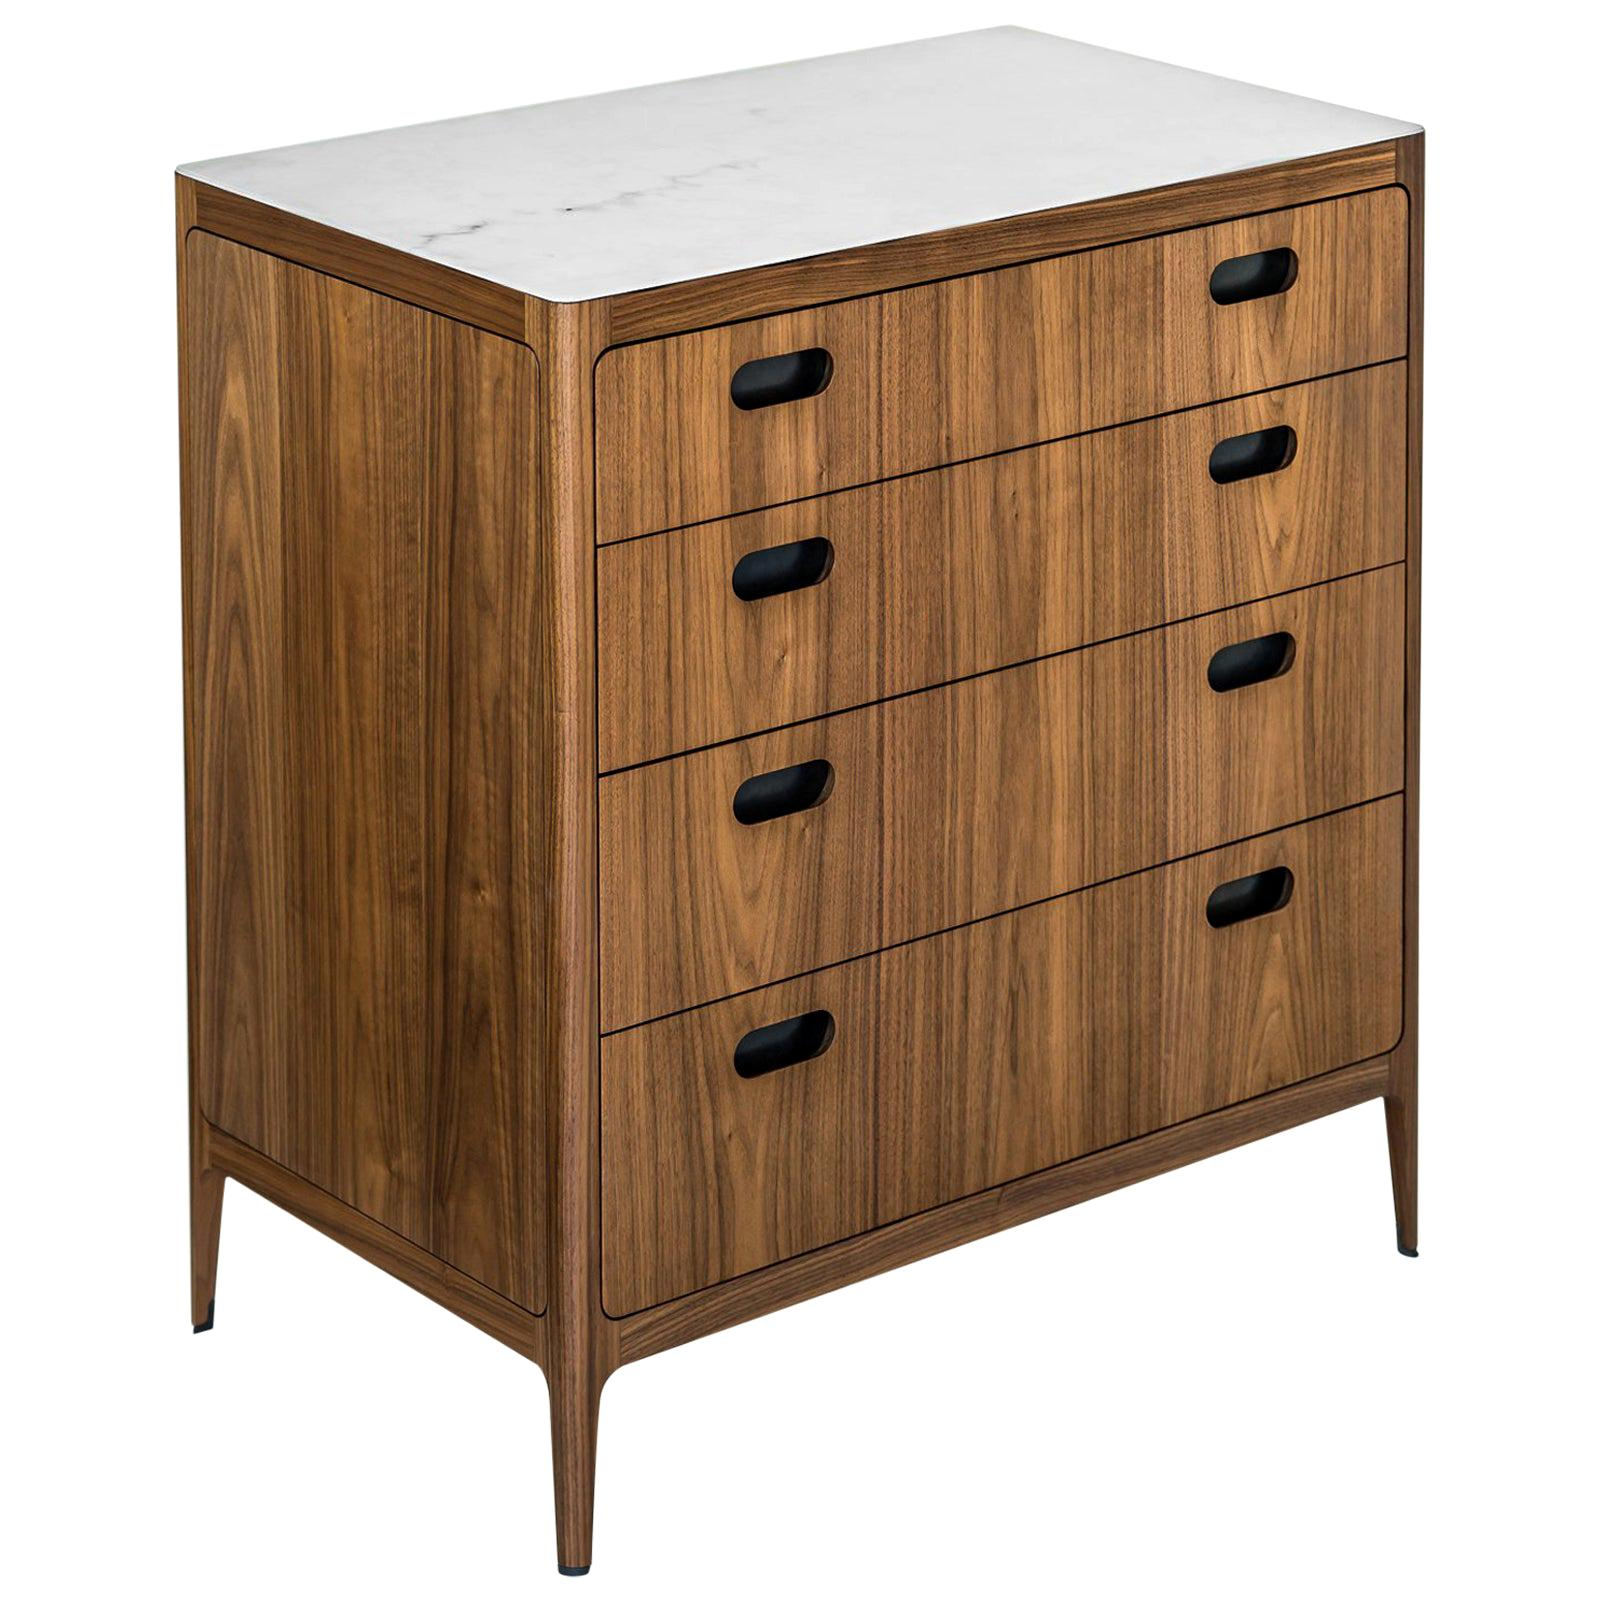 Four-Drawer Dresser from Munson Furniture in Walnut